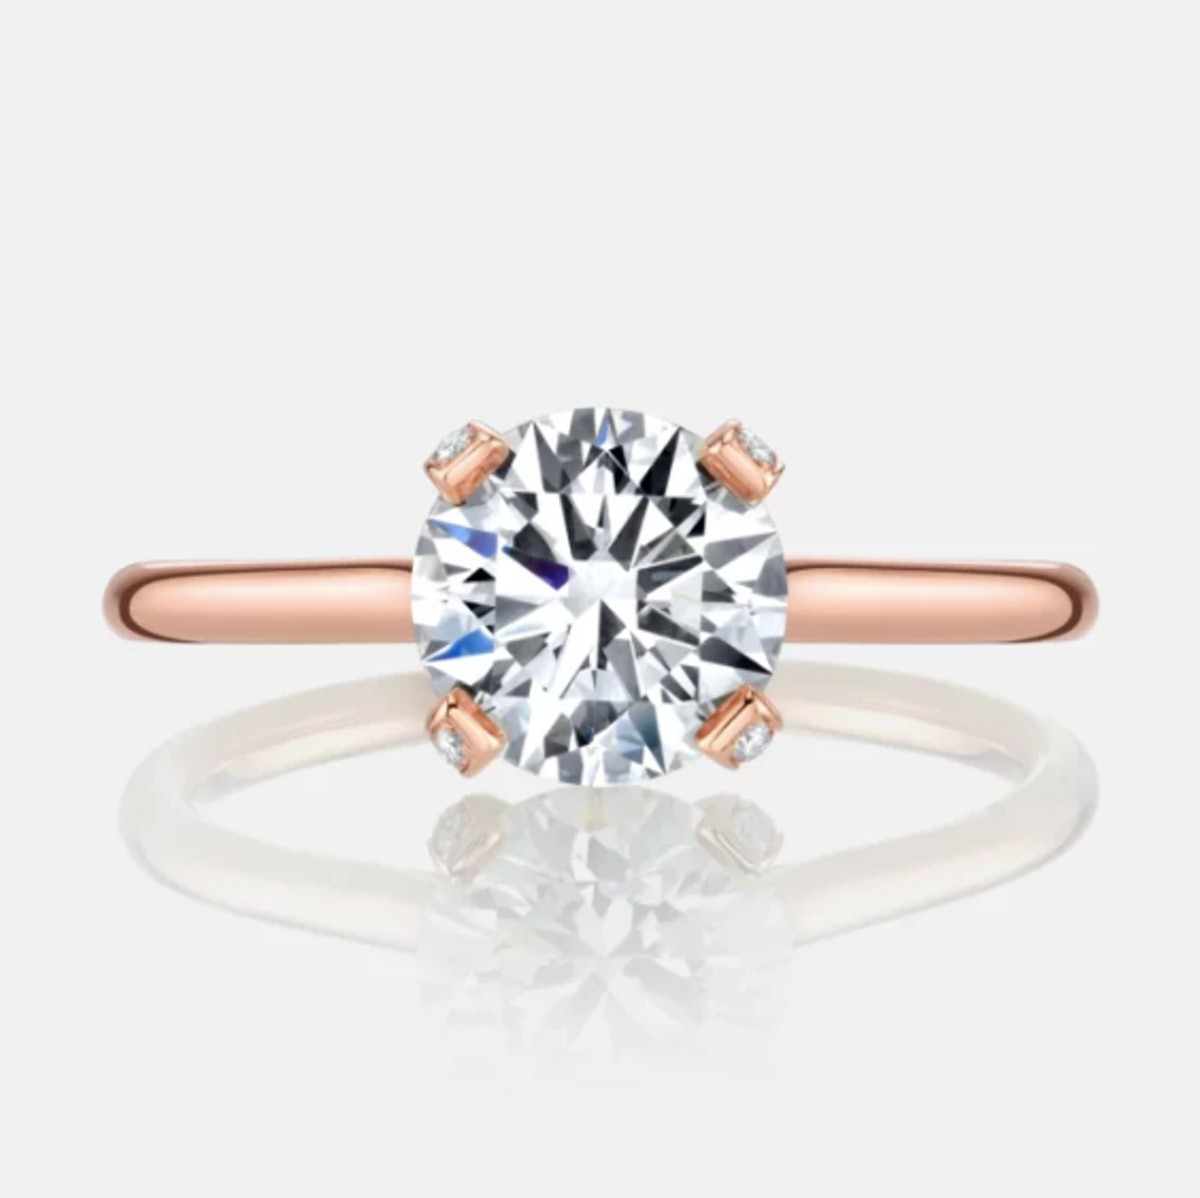 MINA Solitaire Engagement Ring